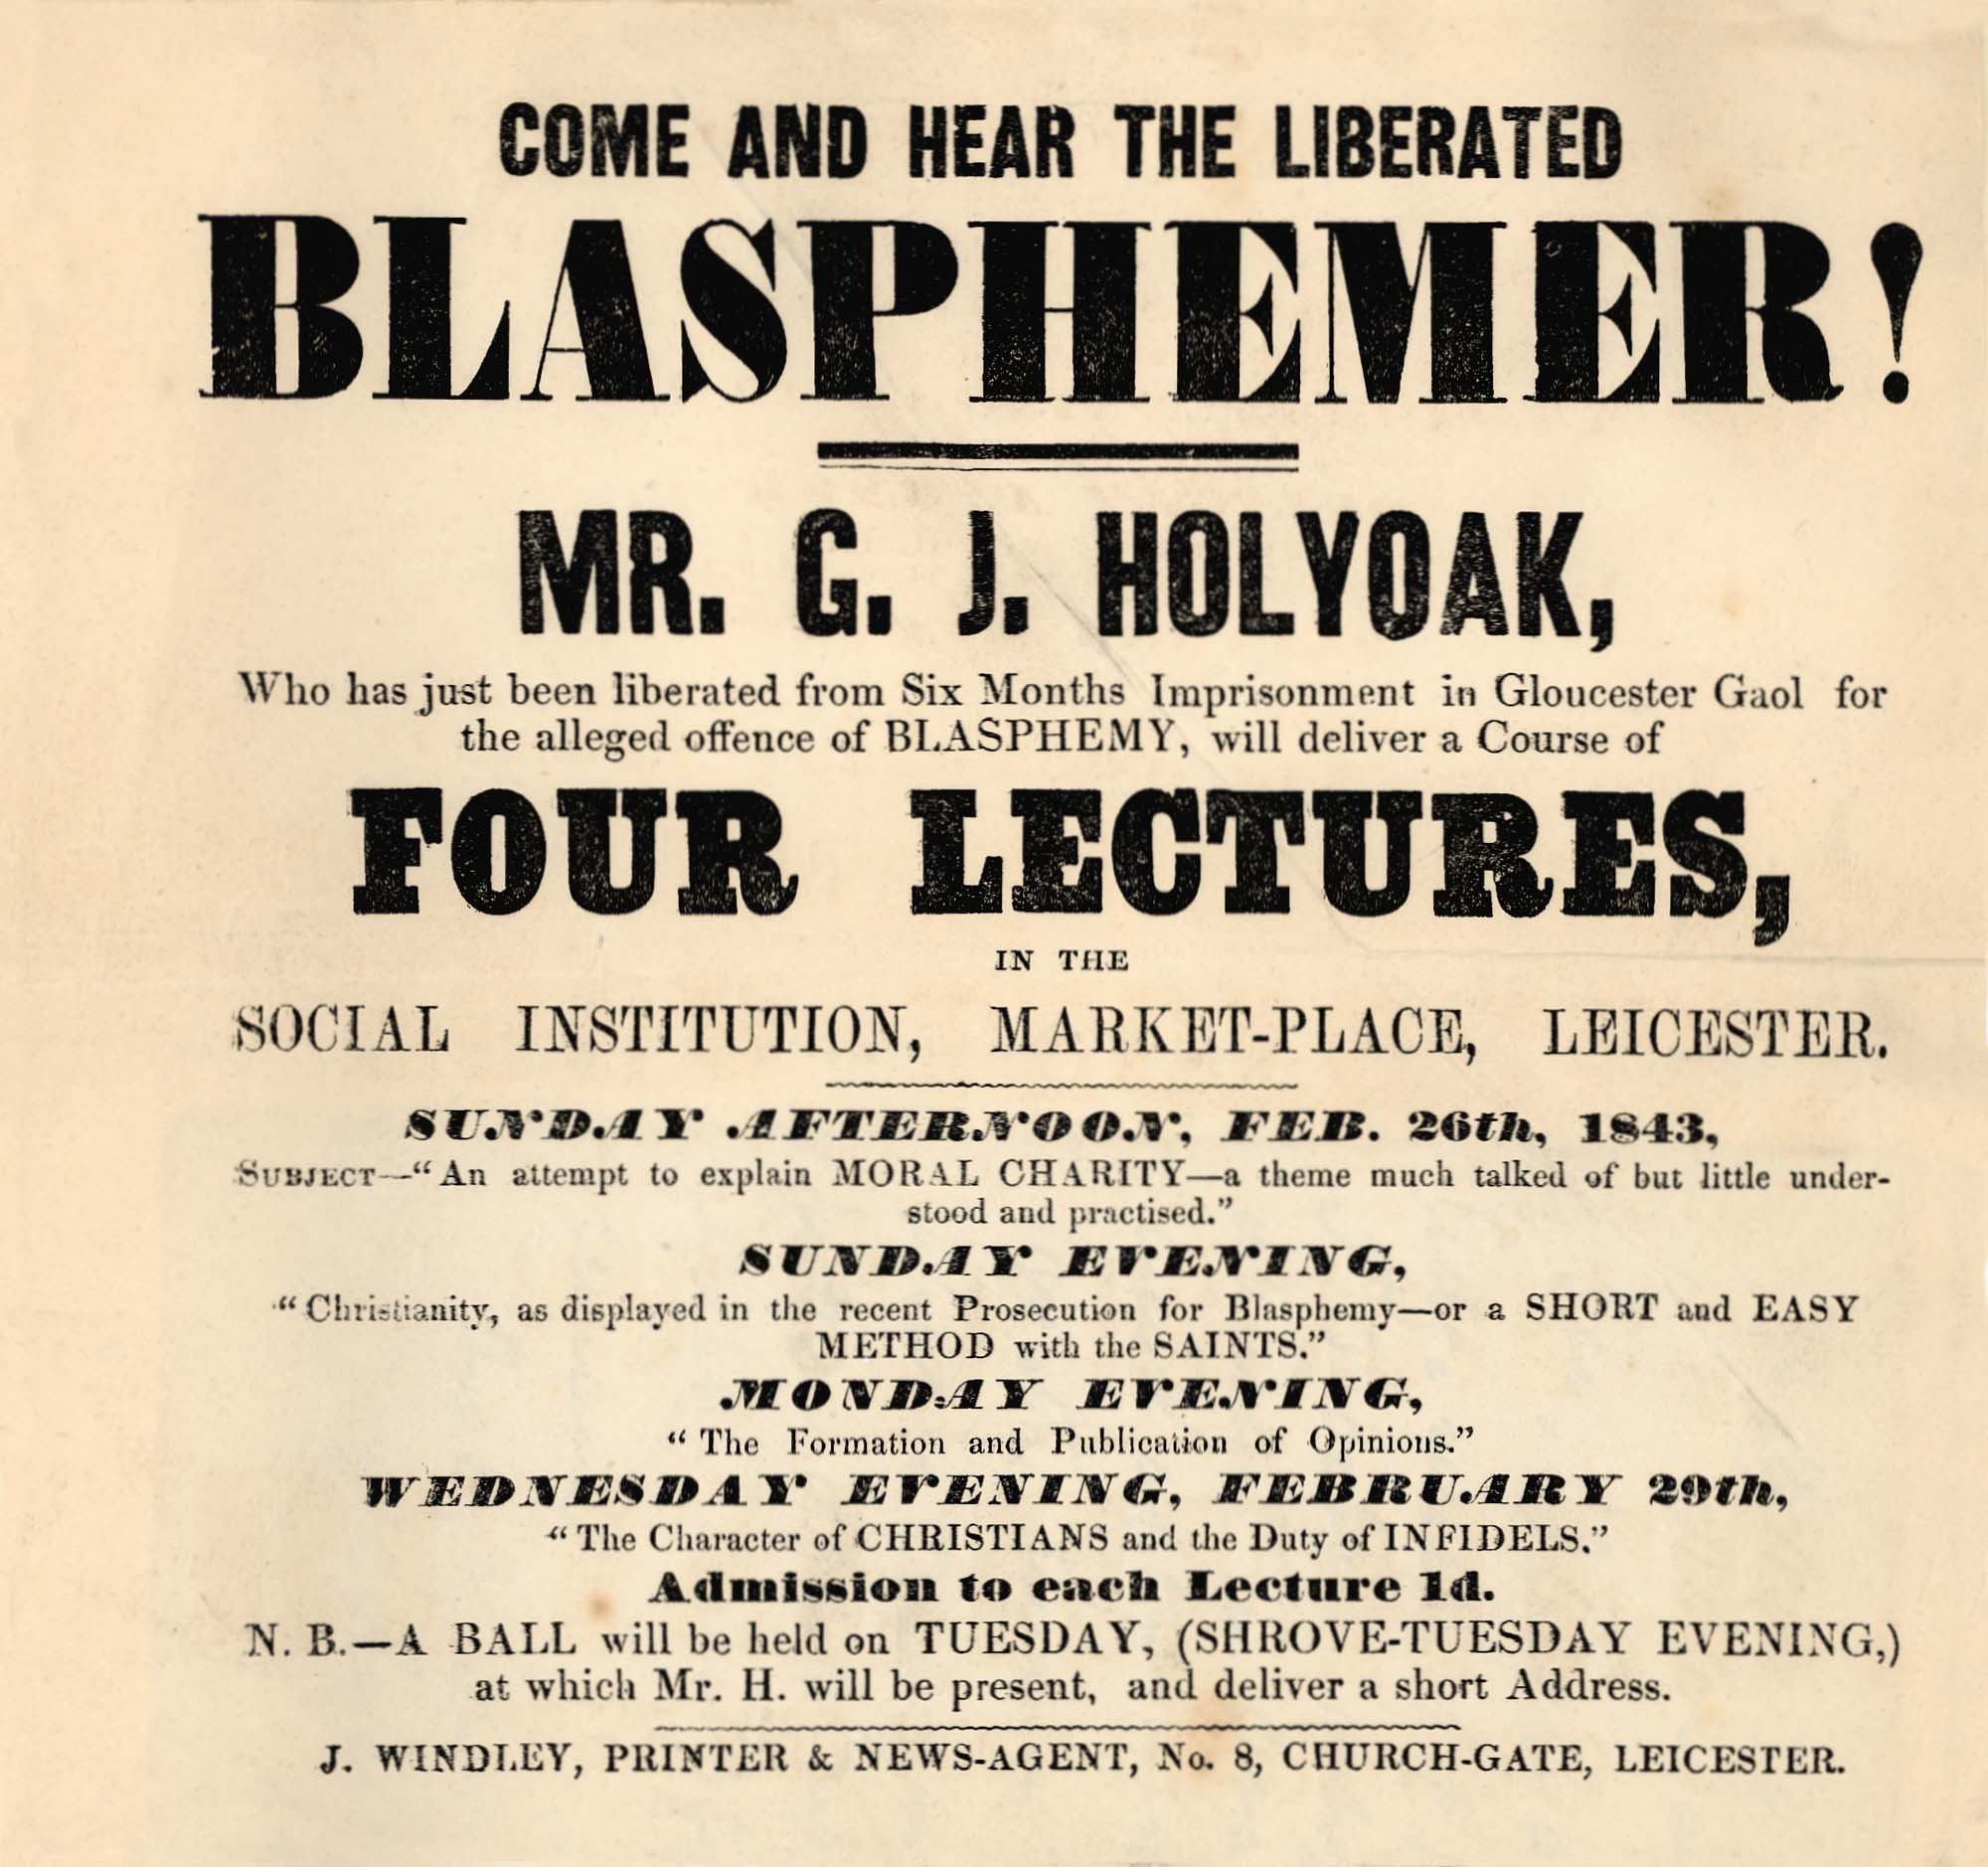 Advert for a talk by Mr. G.J. Holyoak, who was imprisoned for blasphemy -